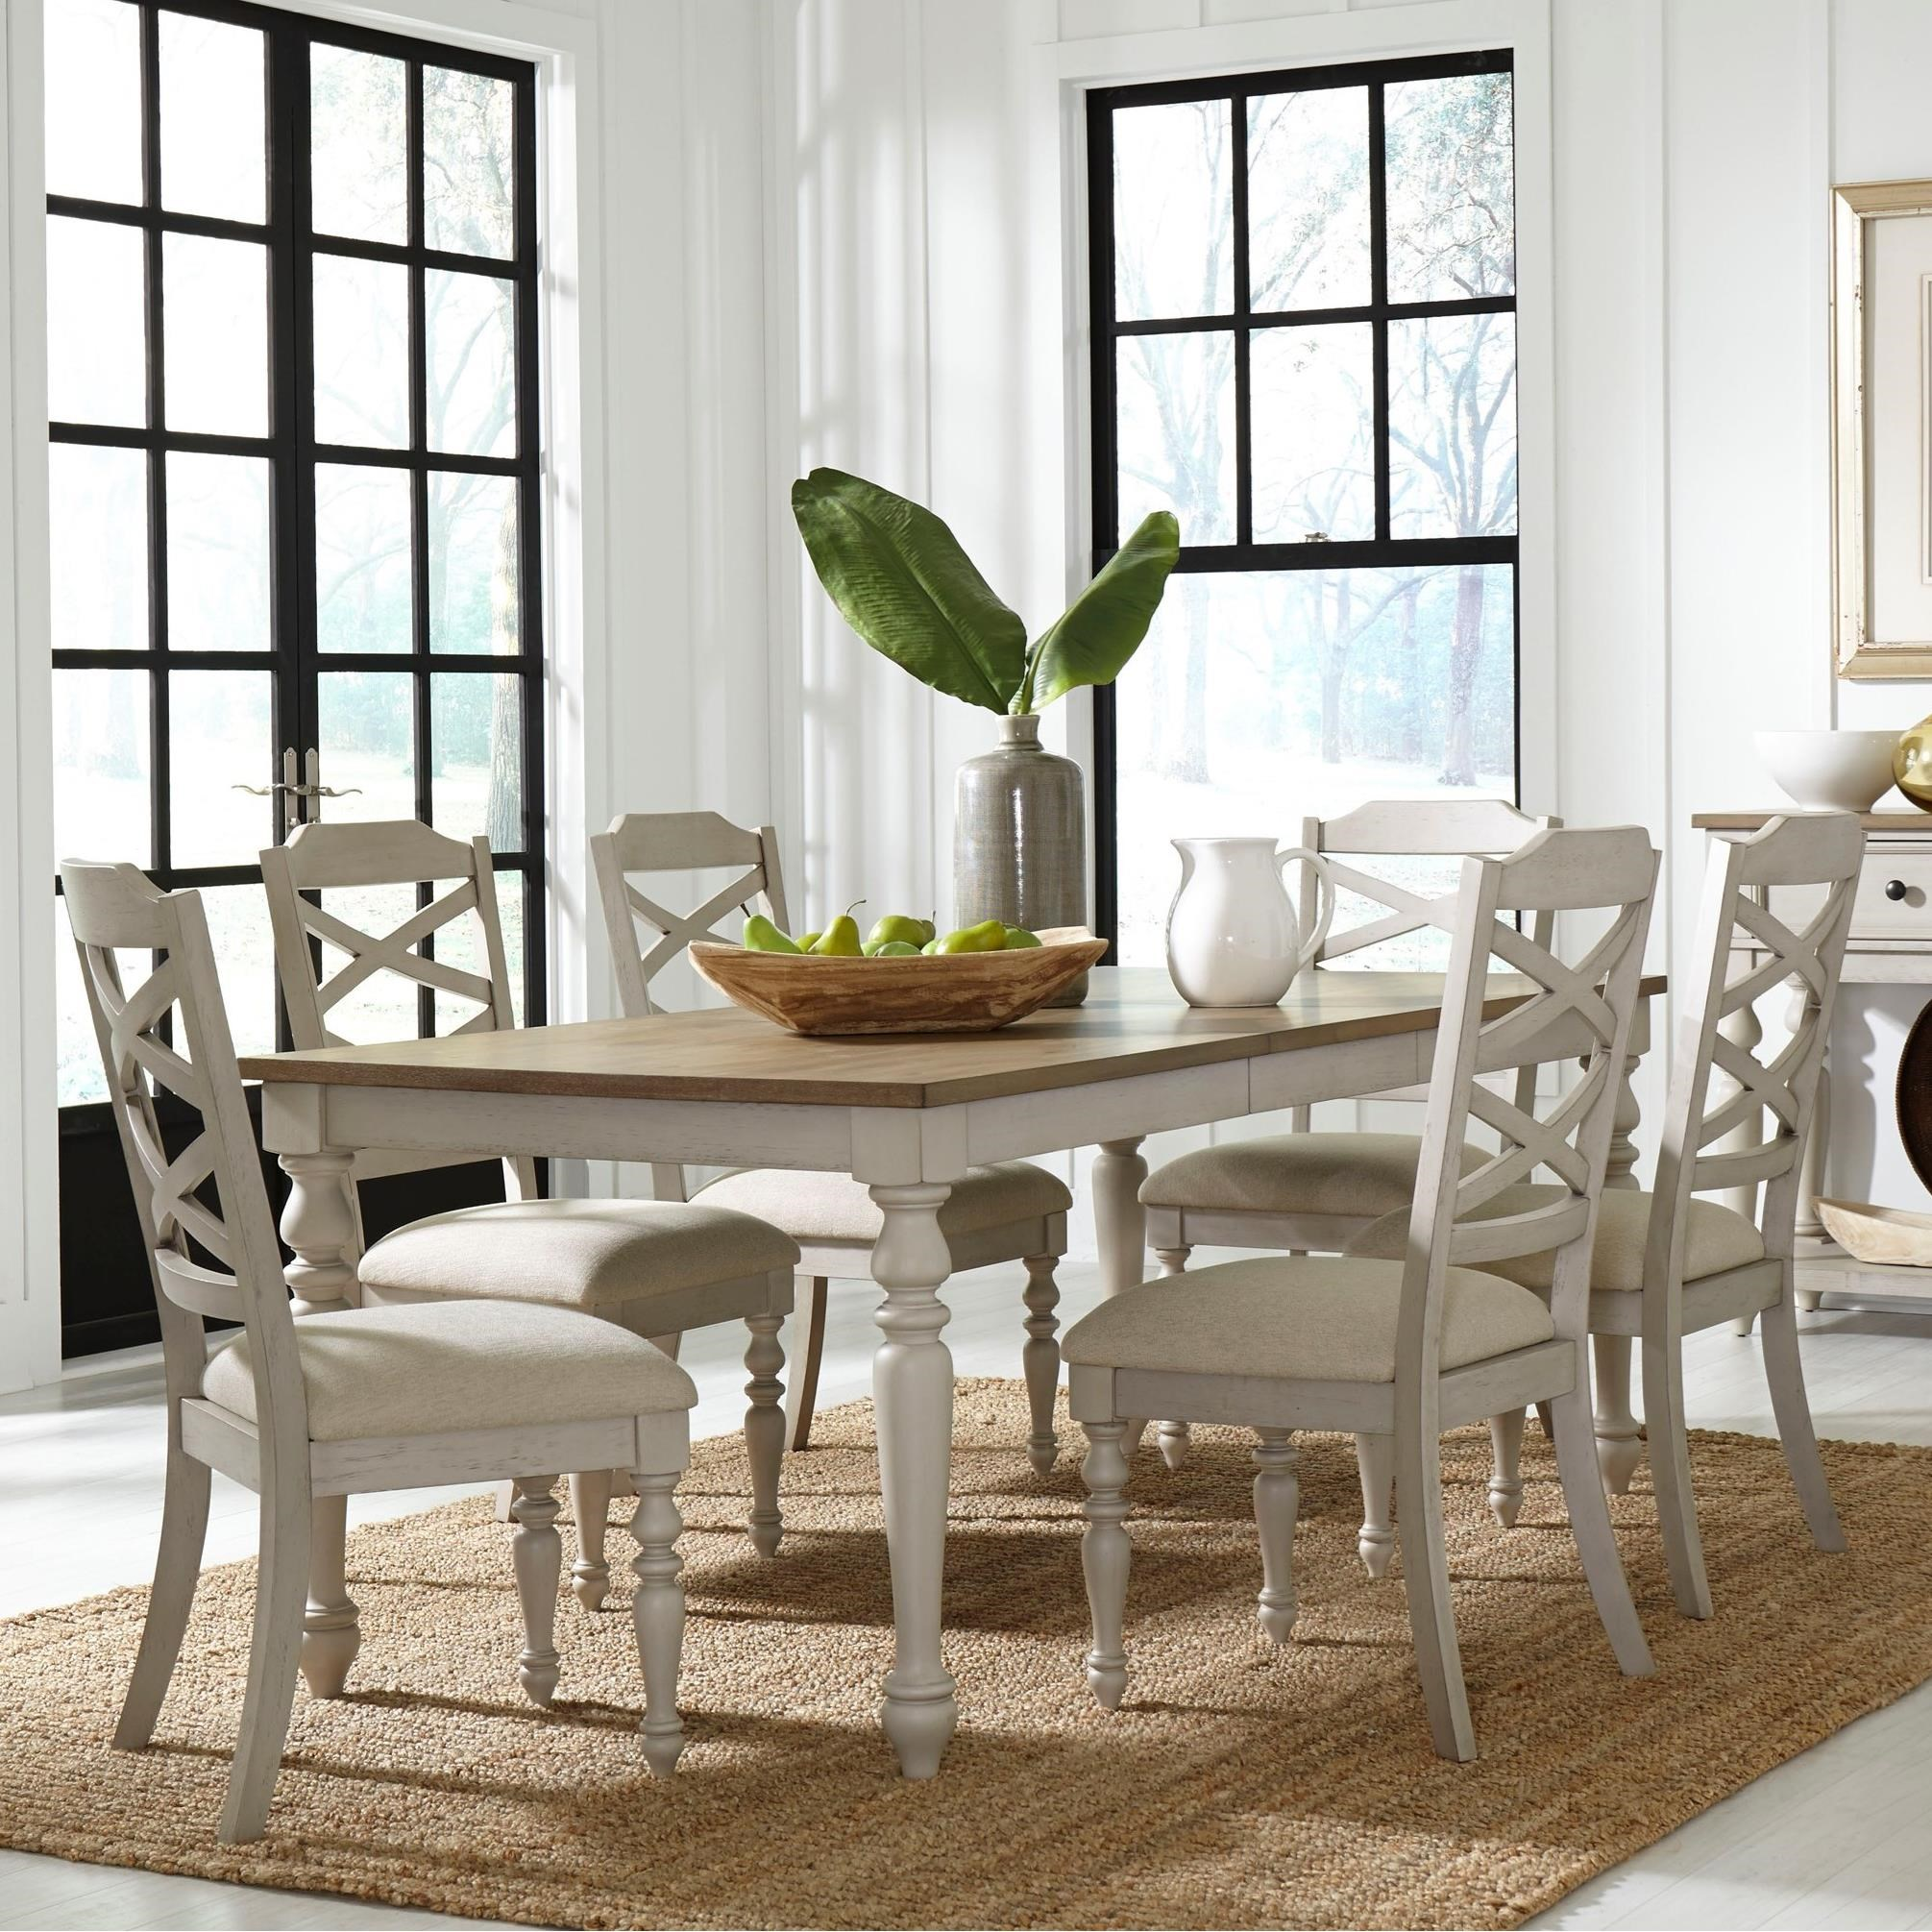 Standard Furniture Larson Light 7 Piece Table And Chair Set Royal Furniture Dining 7 Or More Piece Sets